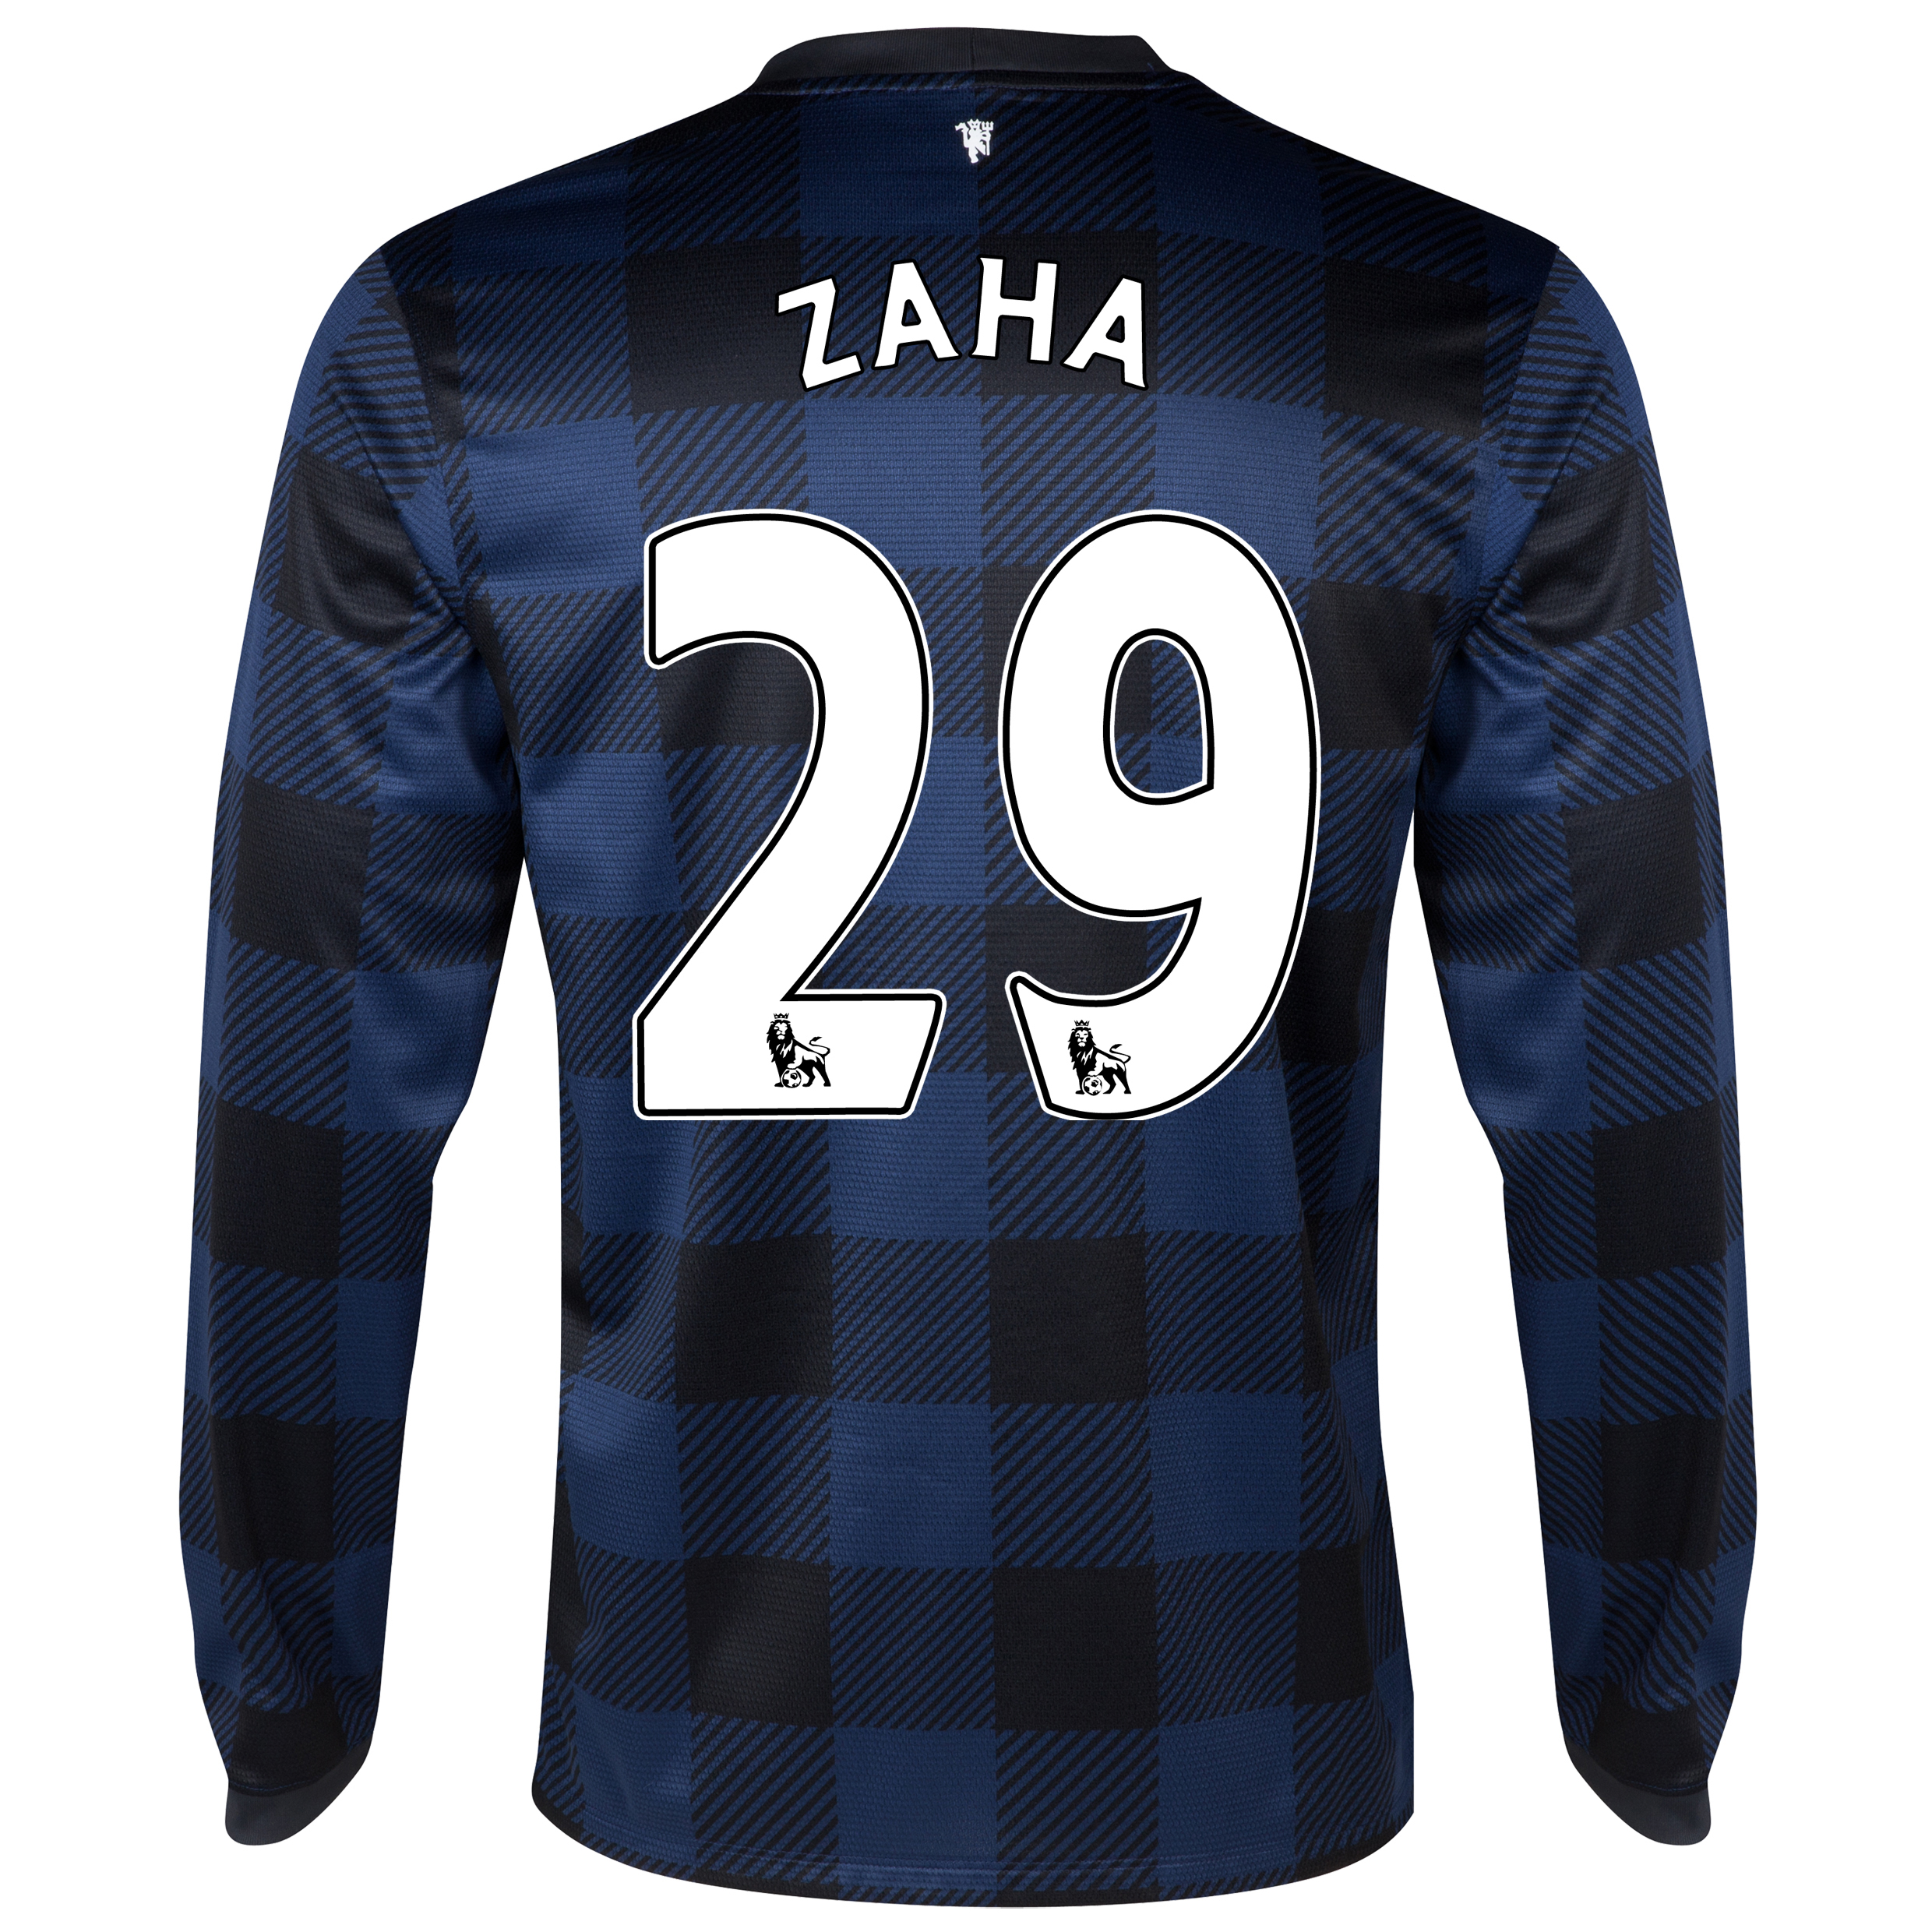 Manchester United Away Shirt 2013/14 - Long Sleeved with Zaha 29 printing